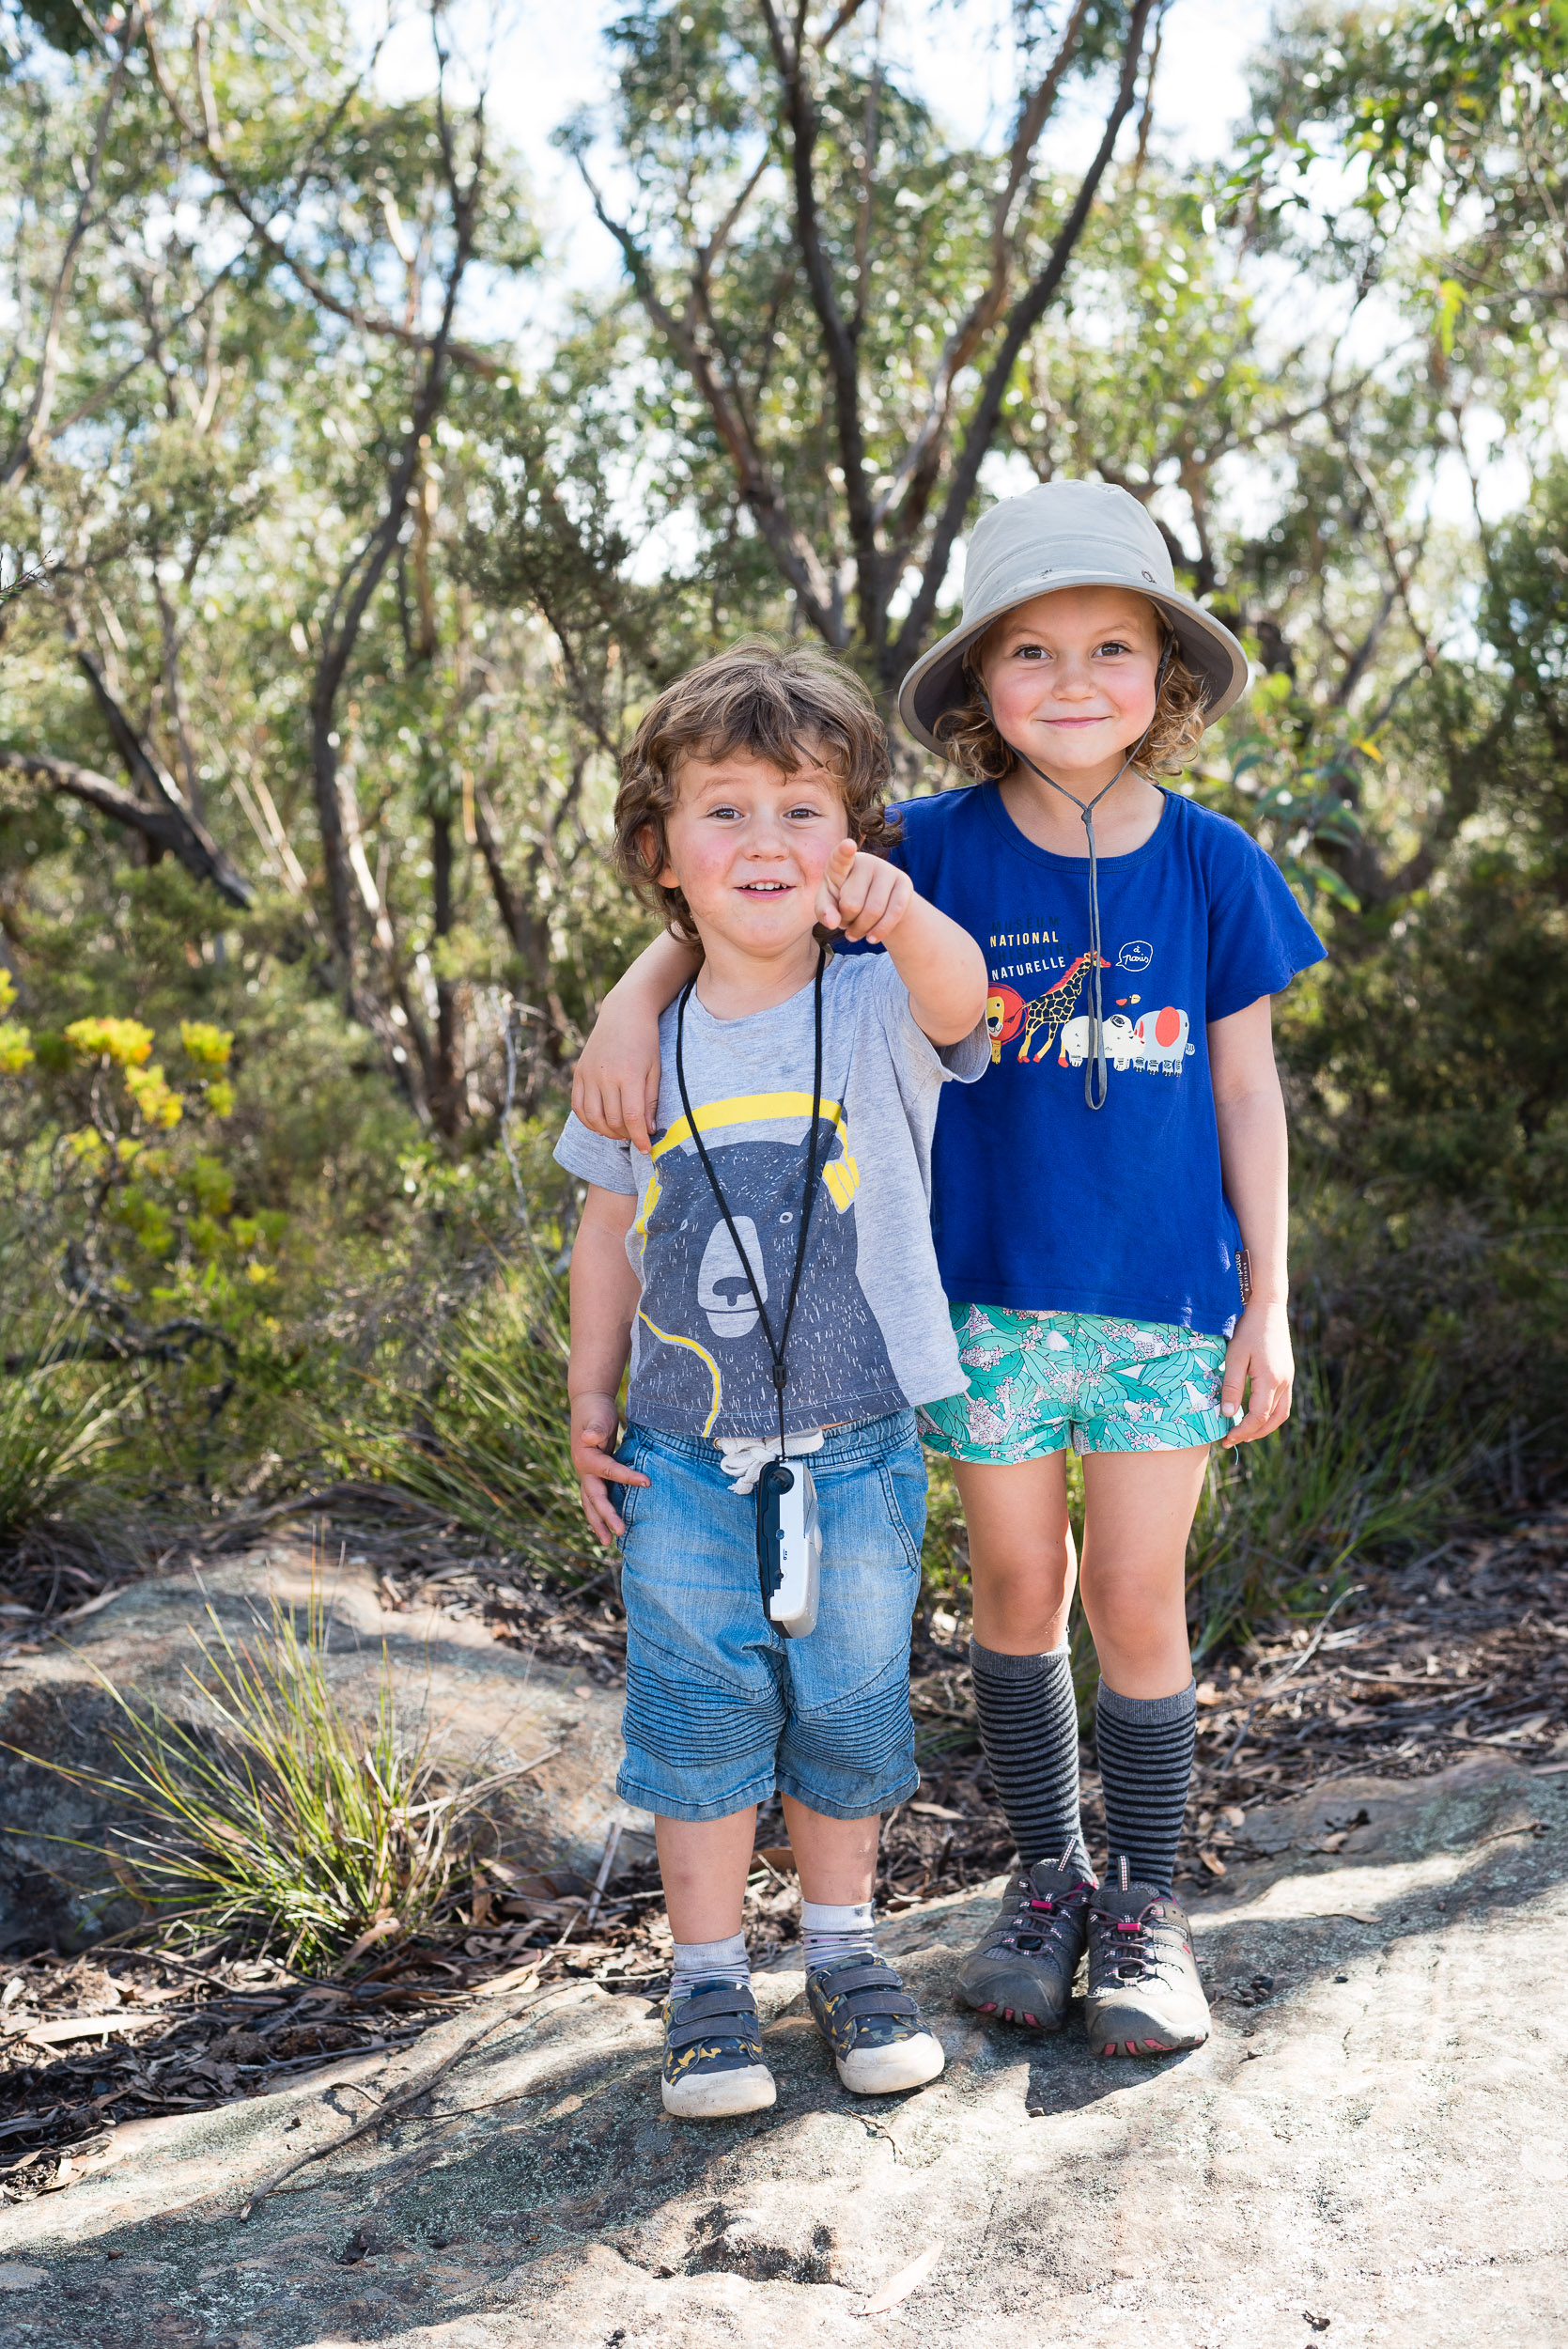 Finn and Holly joking around for a portrait, Narrowneck.